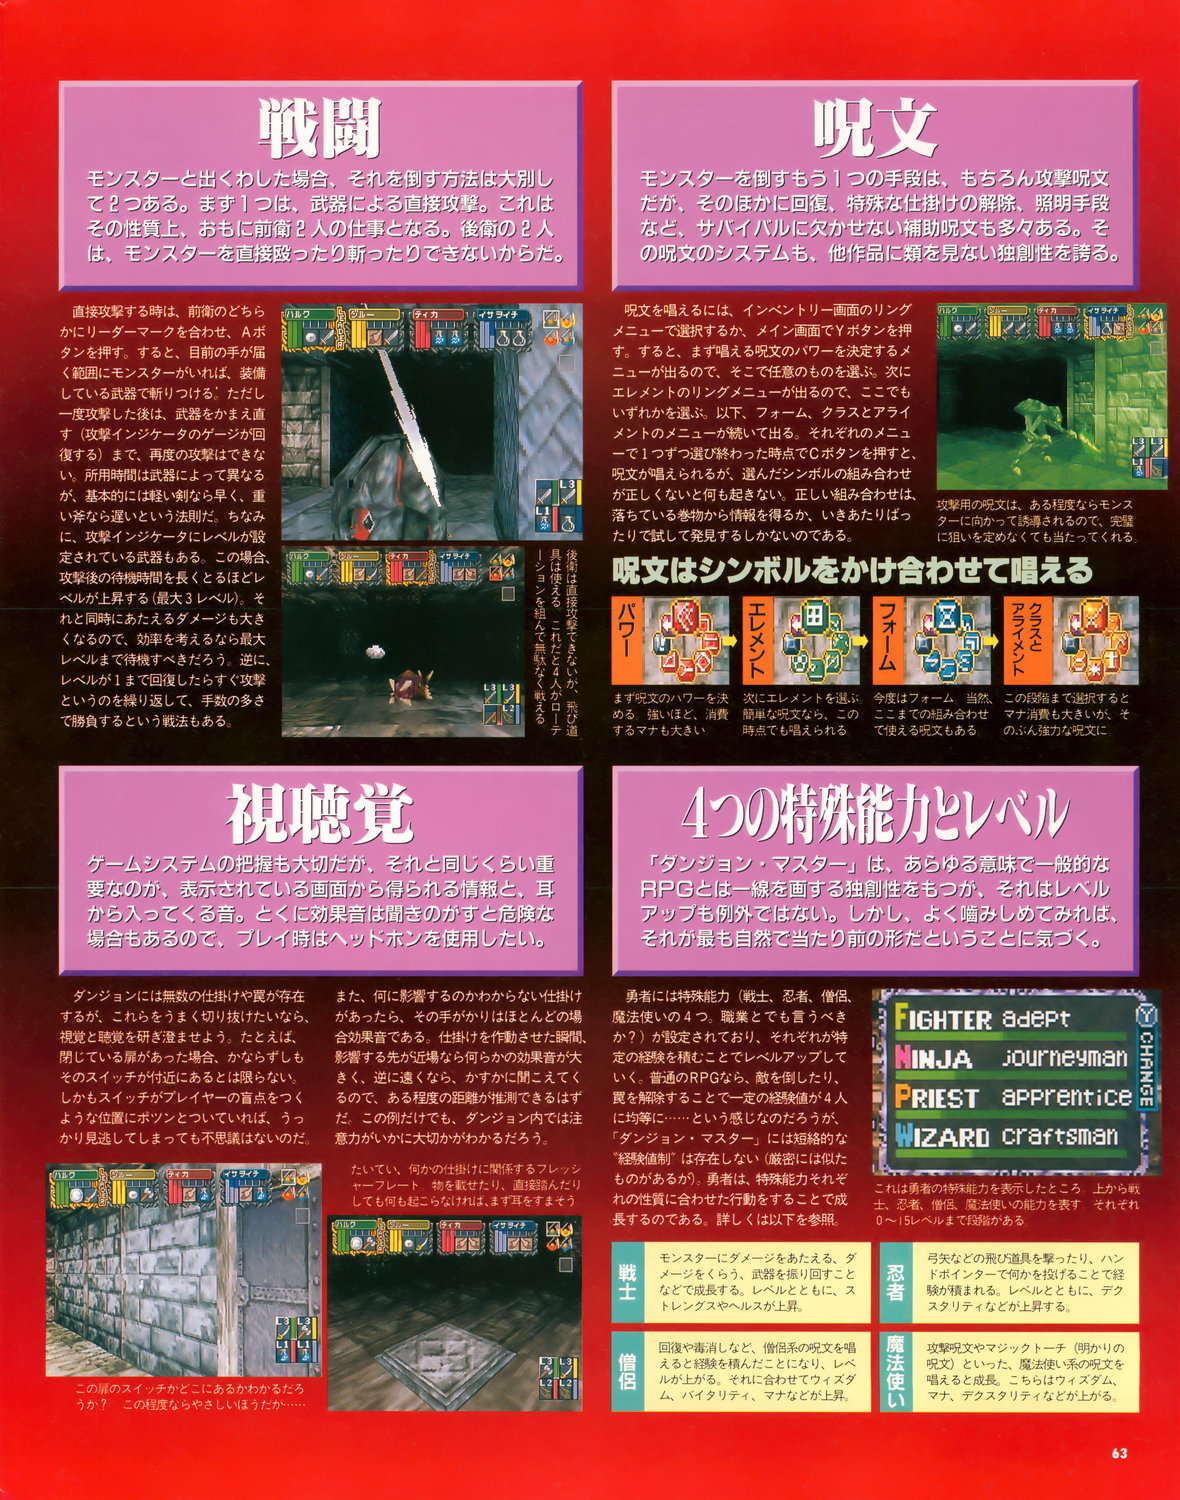 Dungeon Master Nexus Preview published in Japanese magazine 'Sega Saturn Magazine', Vol 7 13 March 1998, Page 63